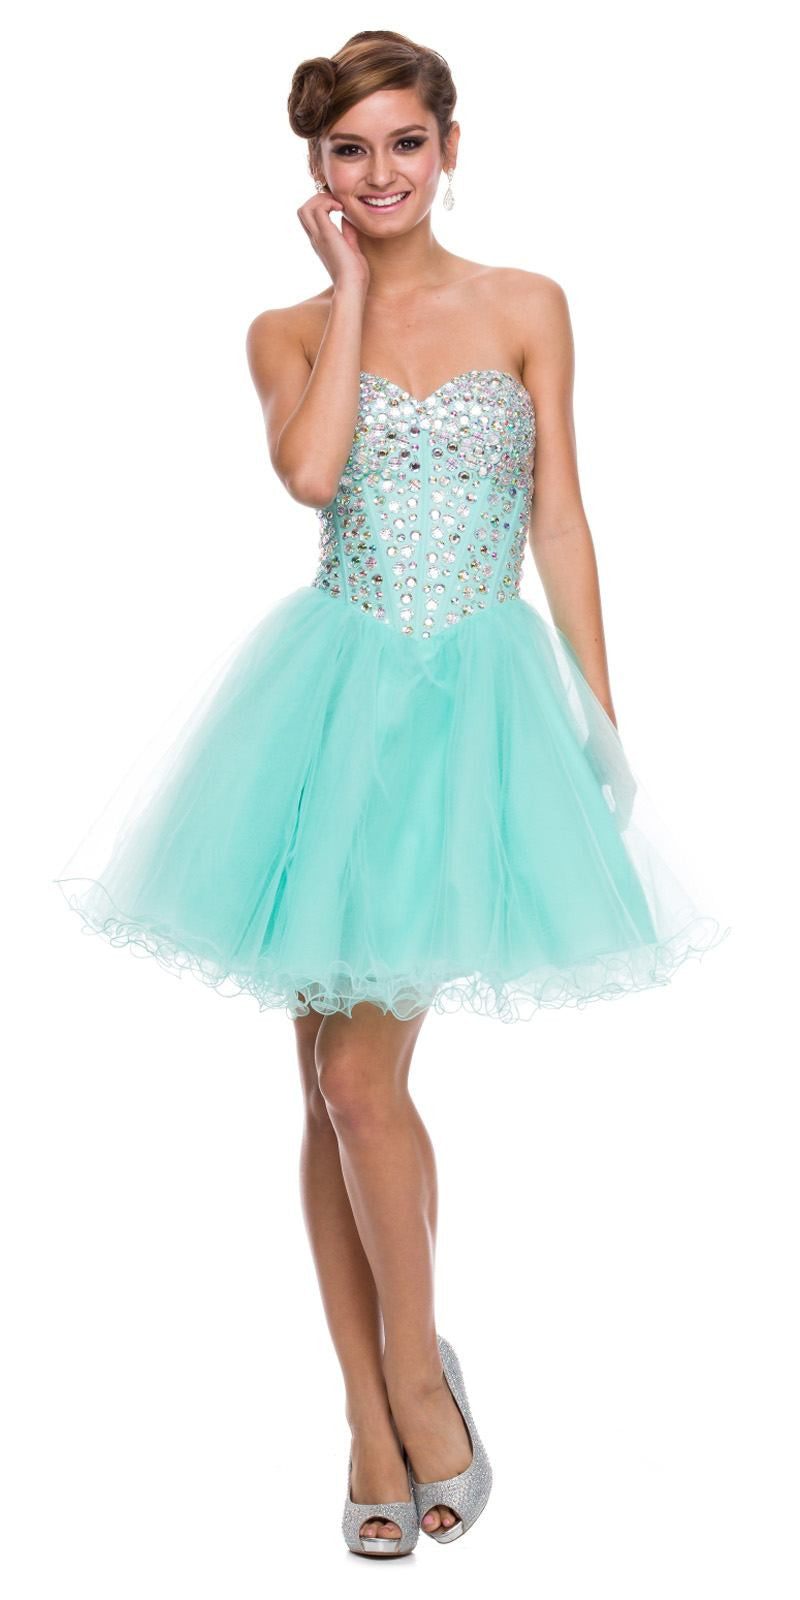 Strapless Rhinestone Embellished Bodice Short Prom Dress Mint Green